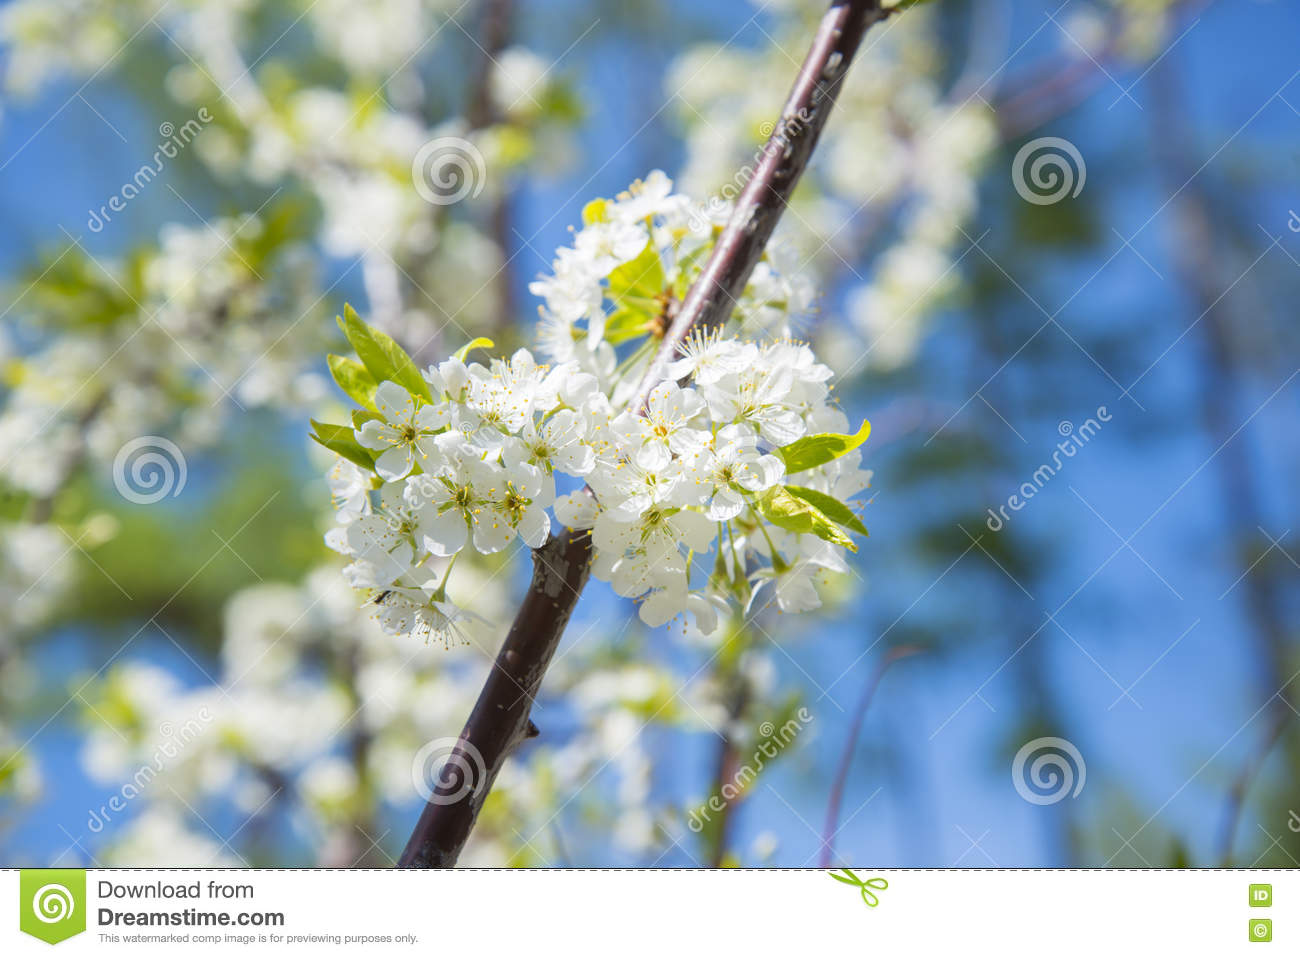 Flowering Crabapple Home The Apple Tree Blooms White Flowers Stock